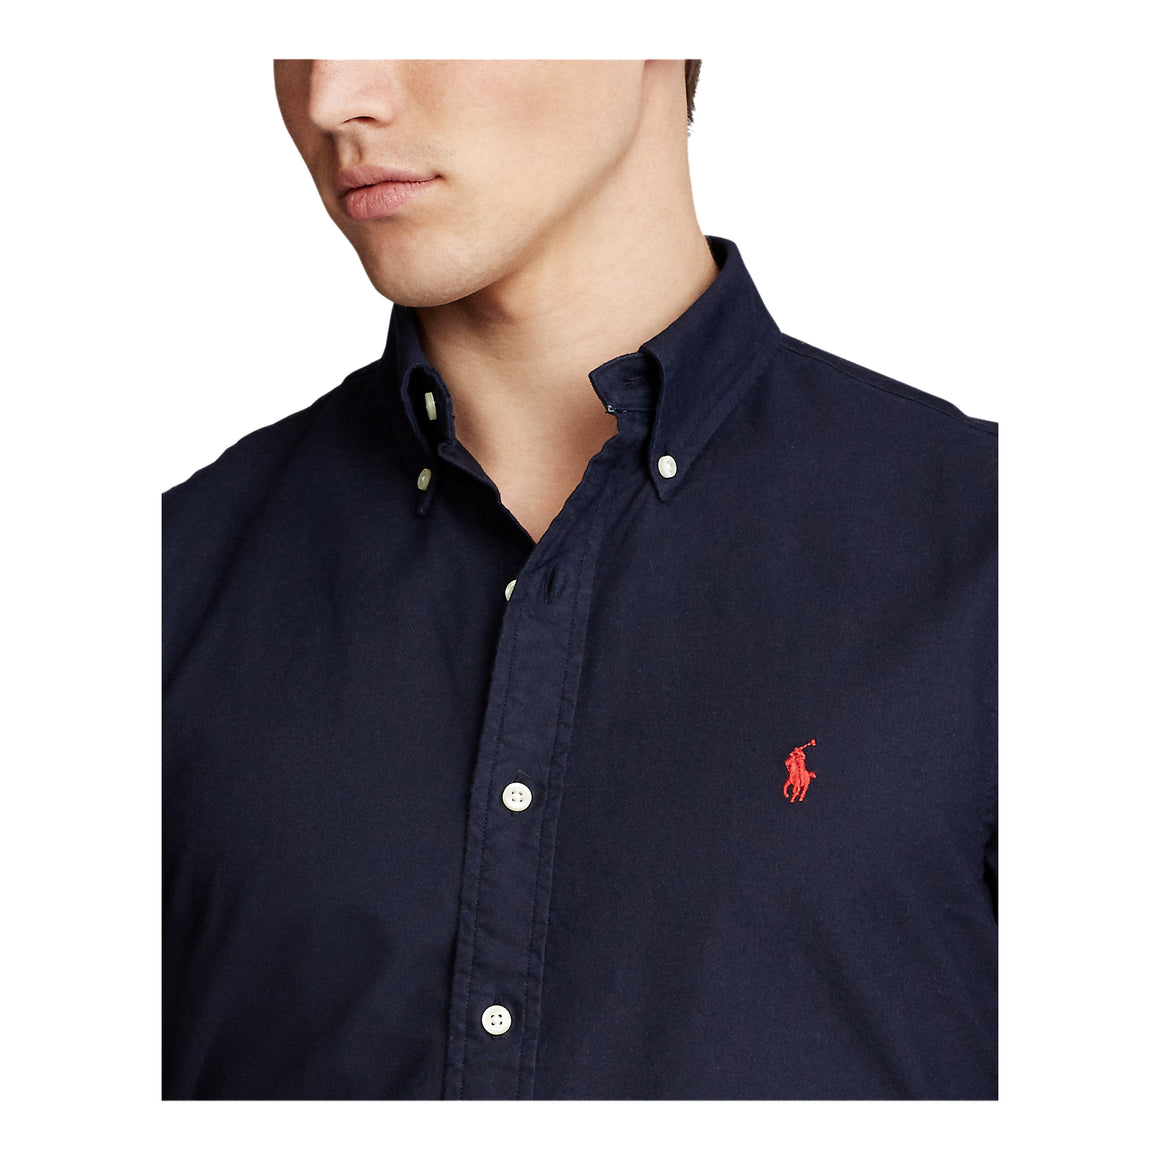 Garment Dyed Oxford Shirt for Men in Navy